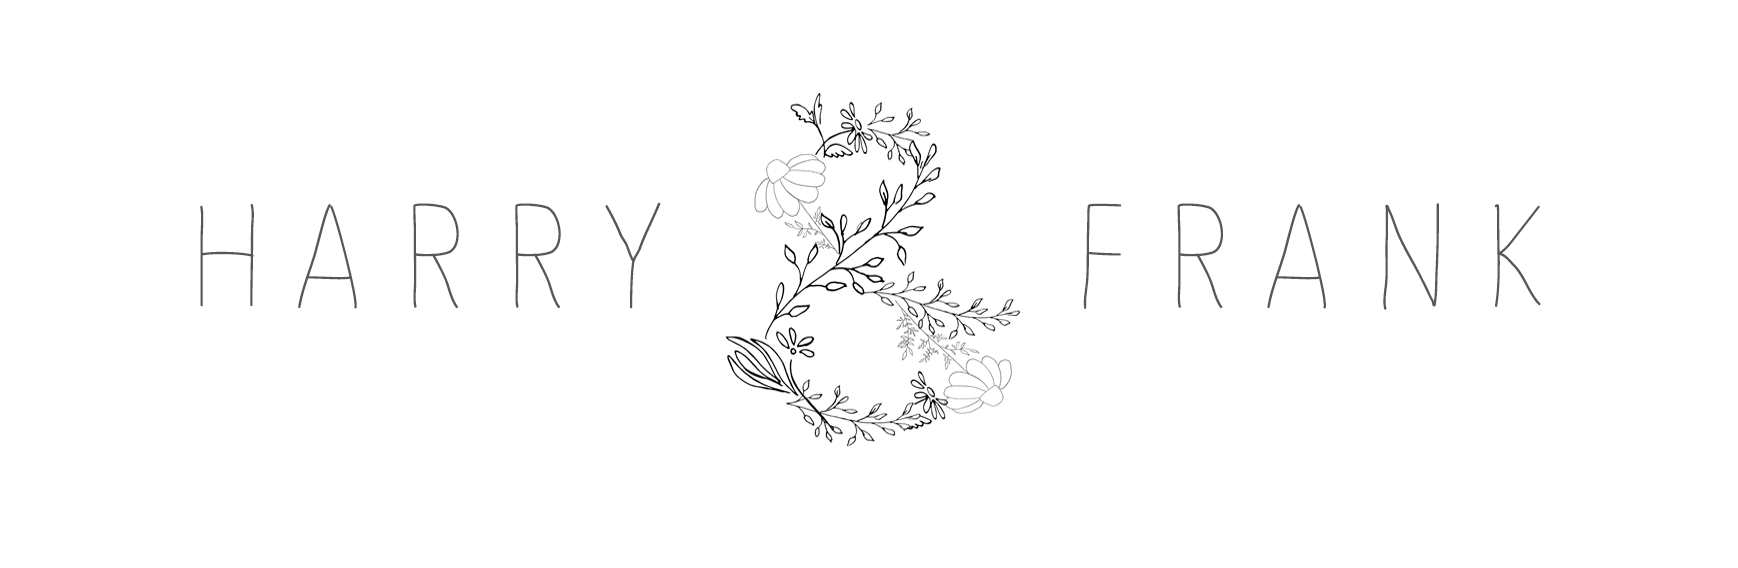 harry and frank new logo10.png